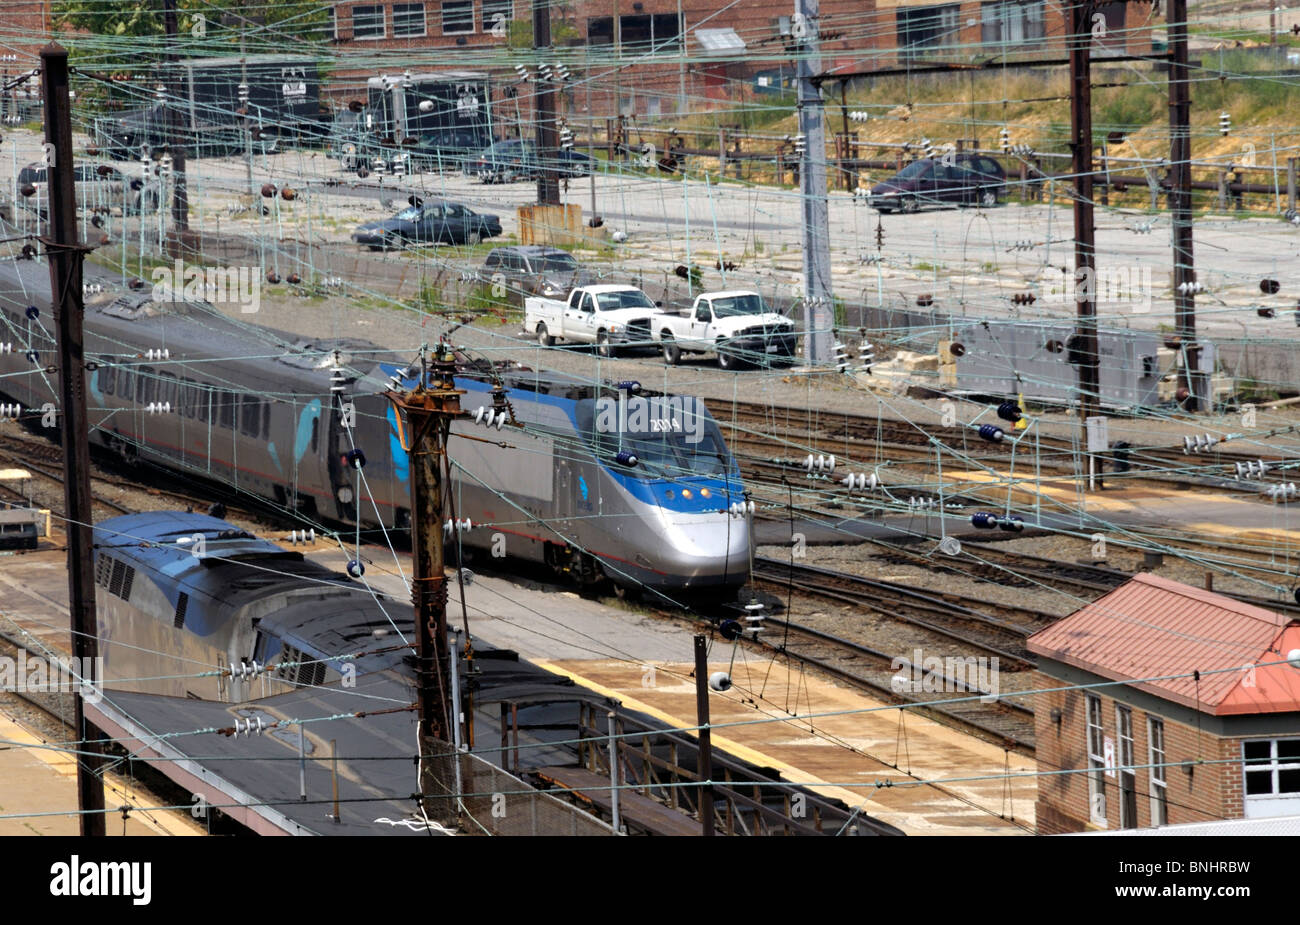 Virginia Railway train arrives  at Union Station in Washington, DC - Stock Image